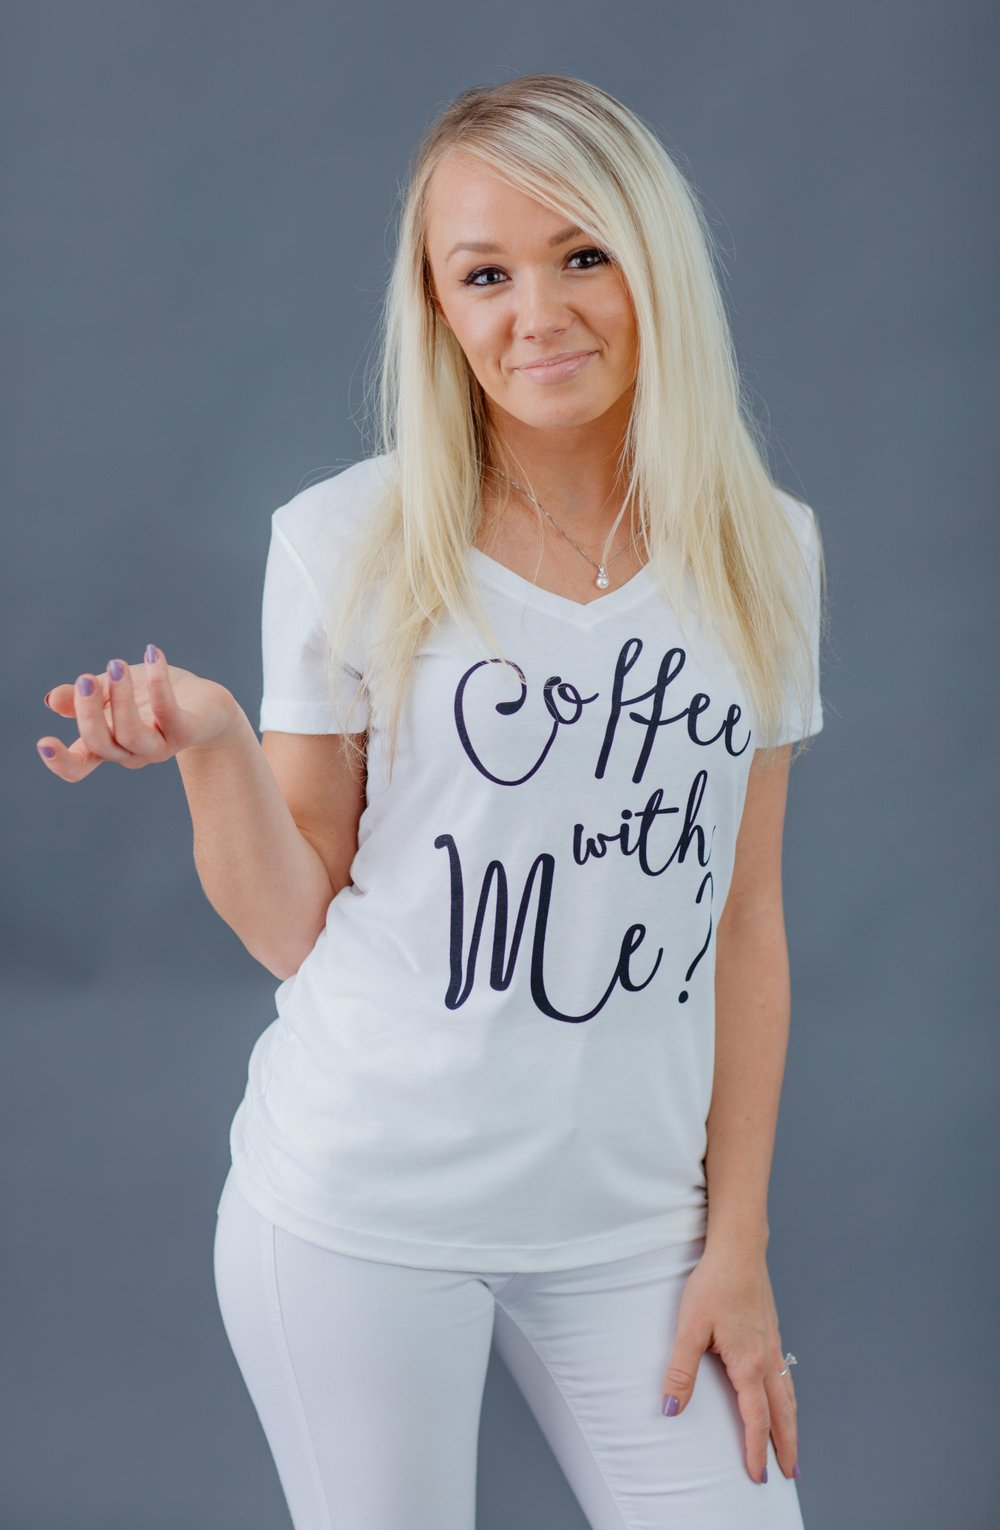 Meet Erika, our  Event Coordinator . Have a cup of coffee with her and find out what a pleasure she is to work with. Erika's passion is to help brides have the best wedding planning experience possible.